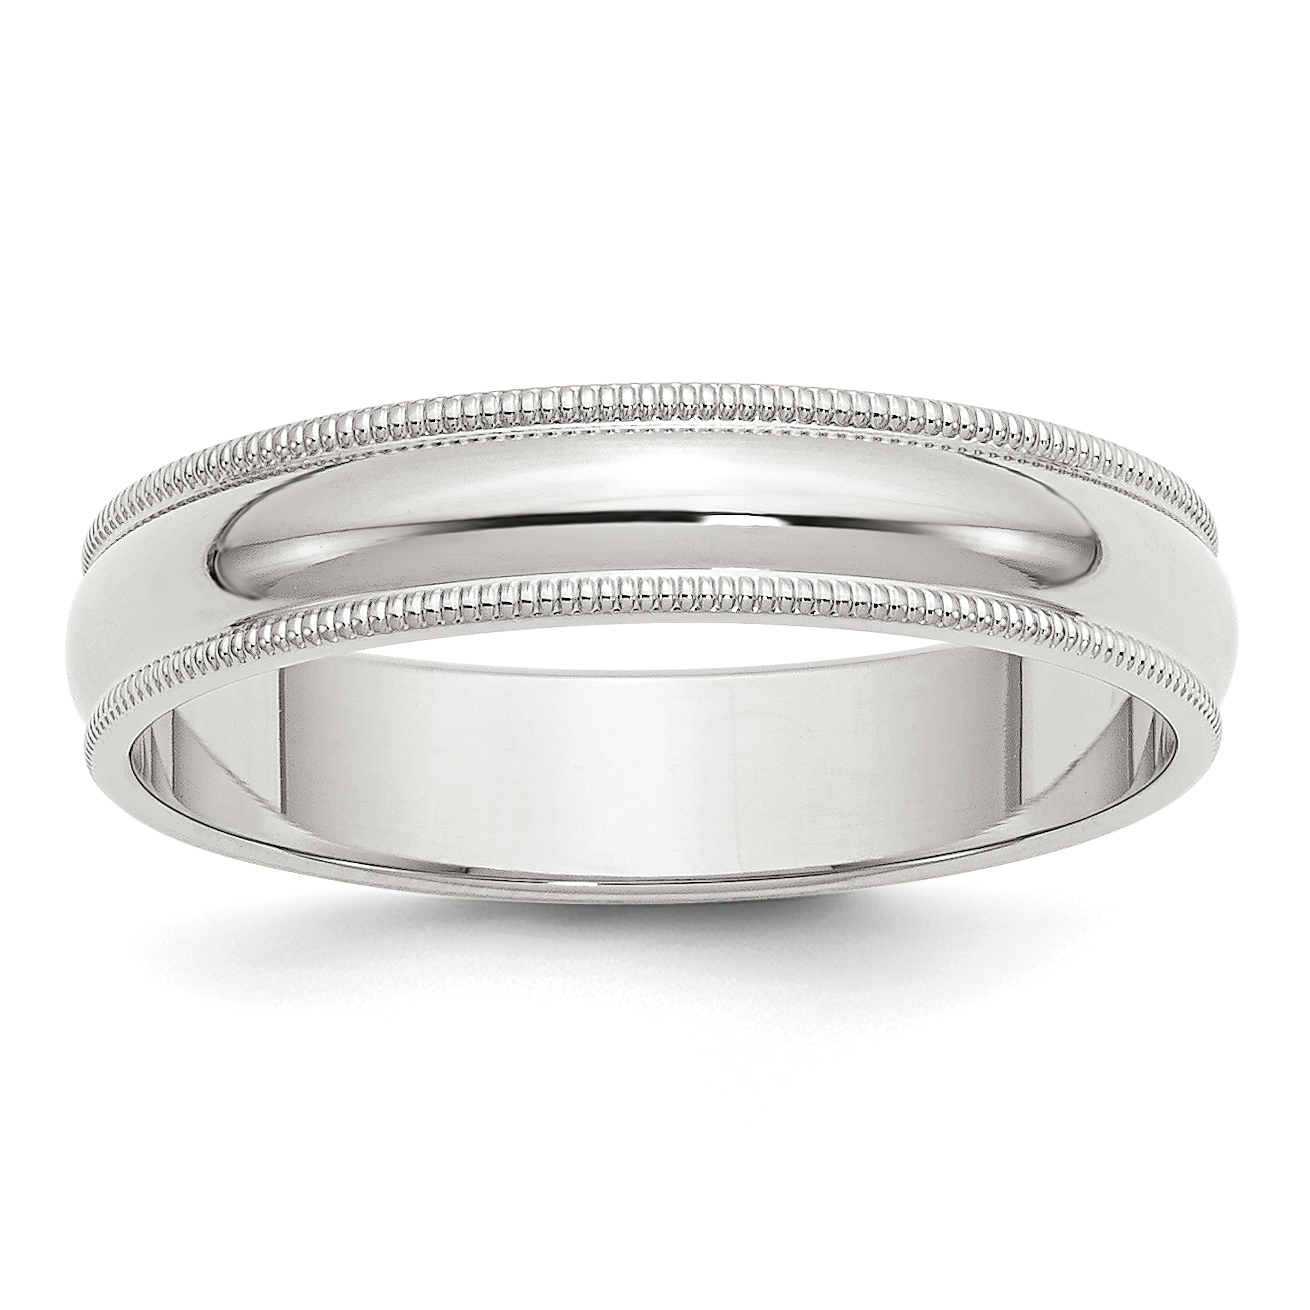 925 Sterling Silver 5mm Half Round Milgrain Wedding Ring Band Size 4.50 Classic Fine Jewelry Gifts For Women For Her - image 2 de 2